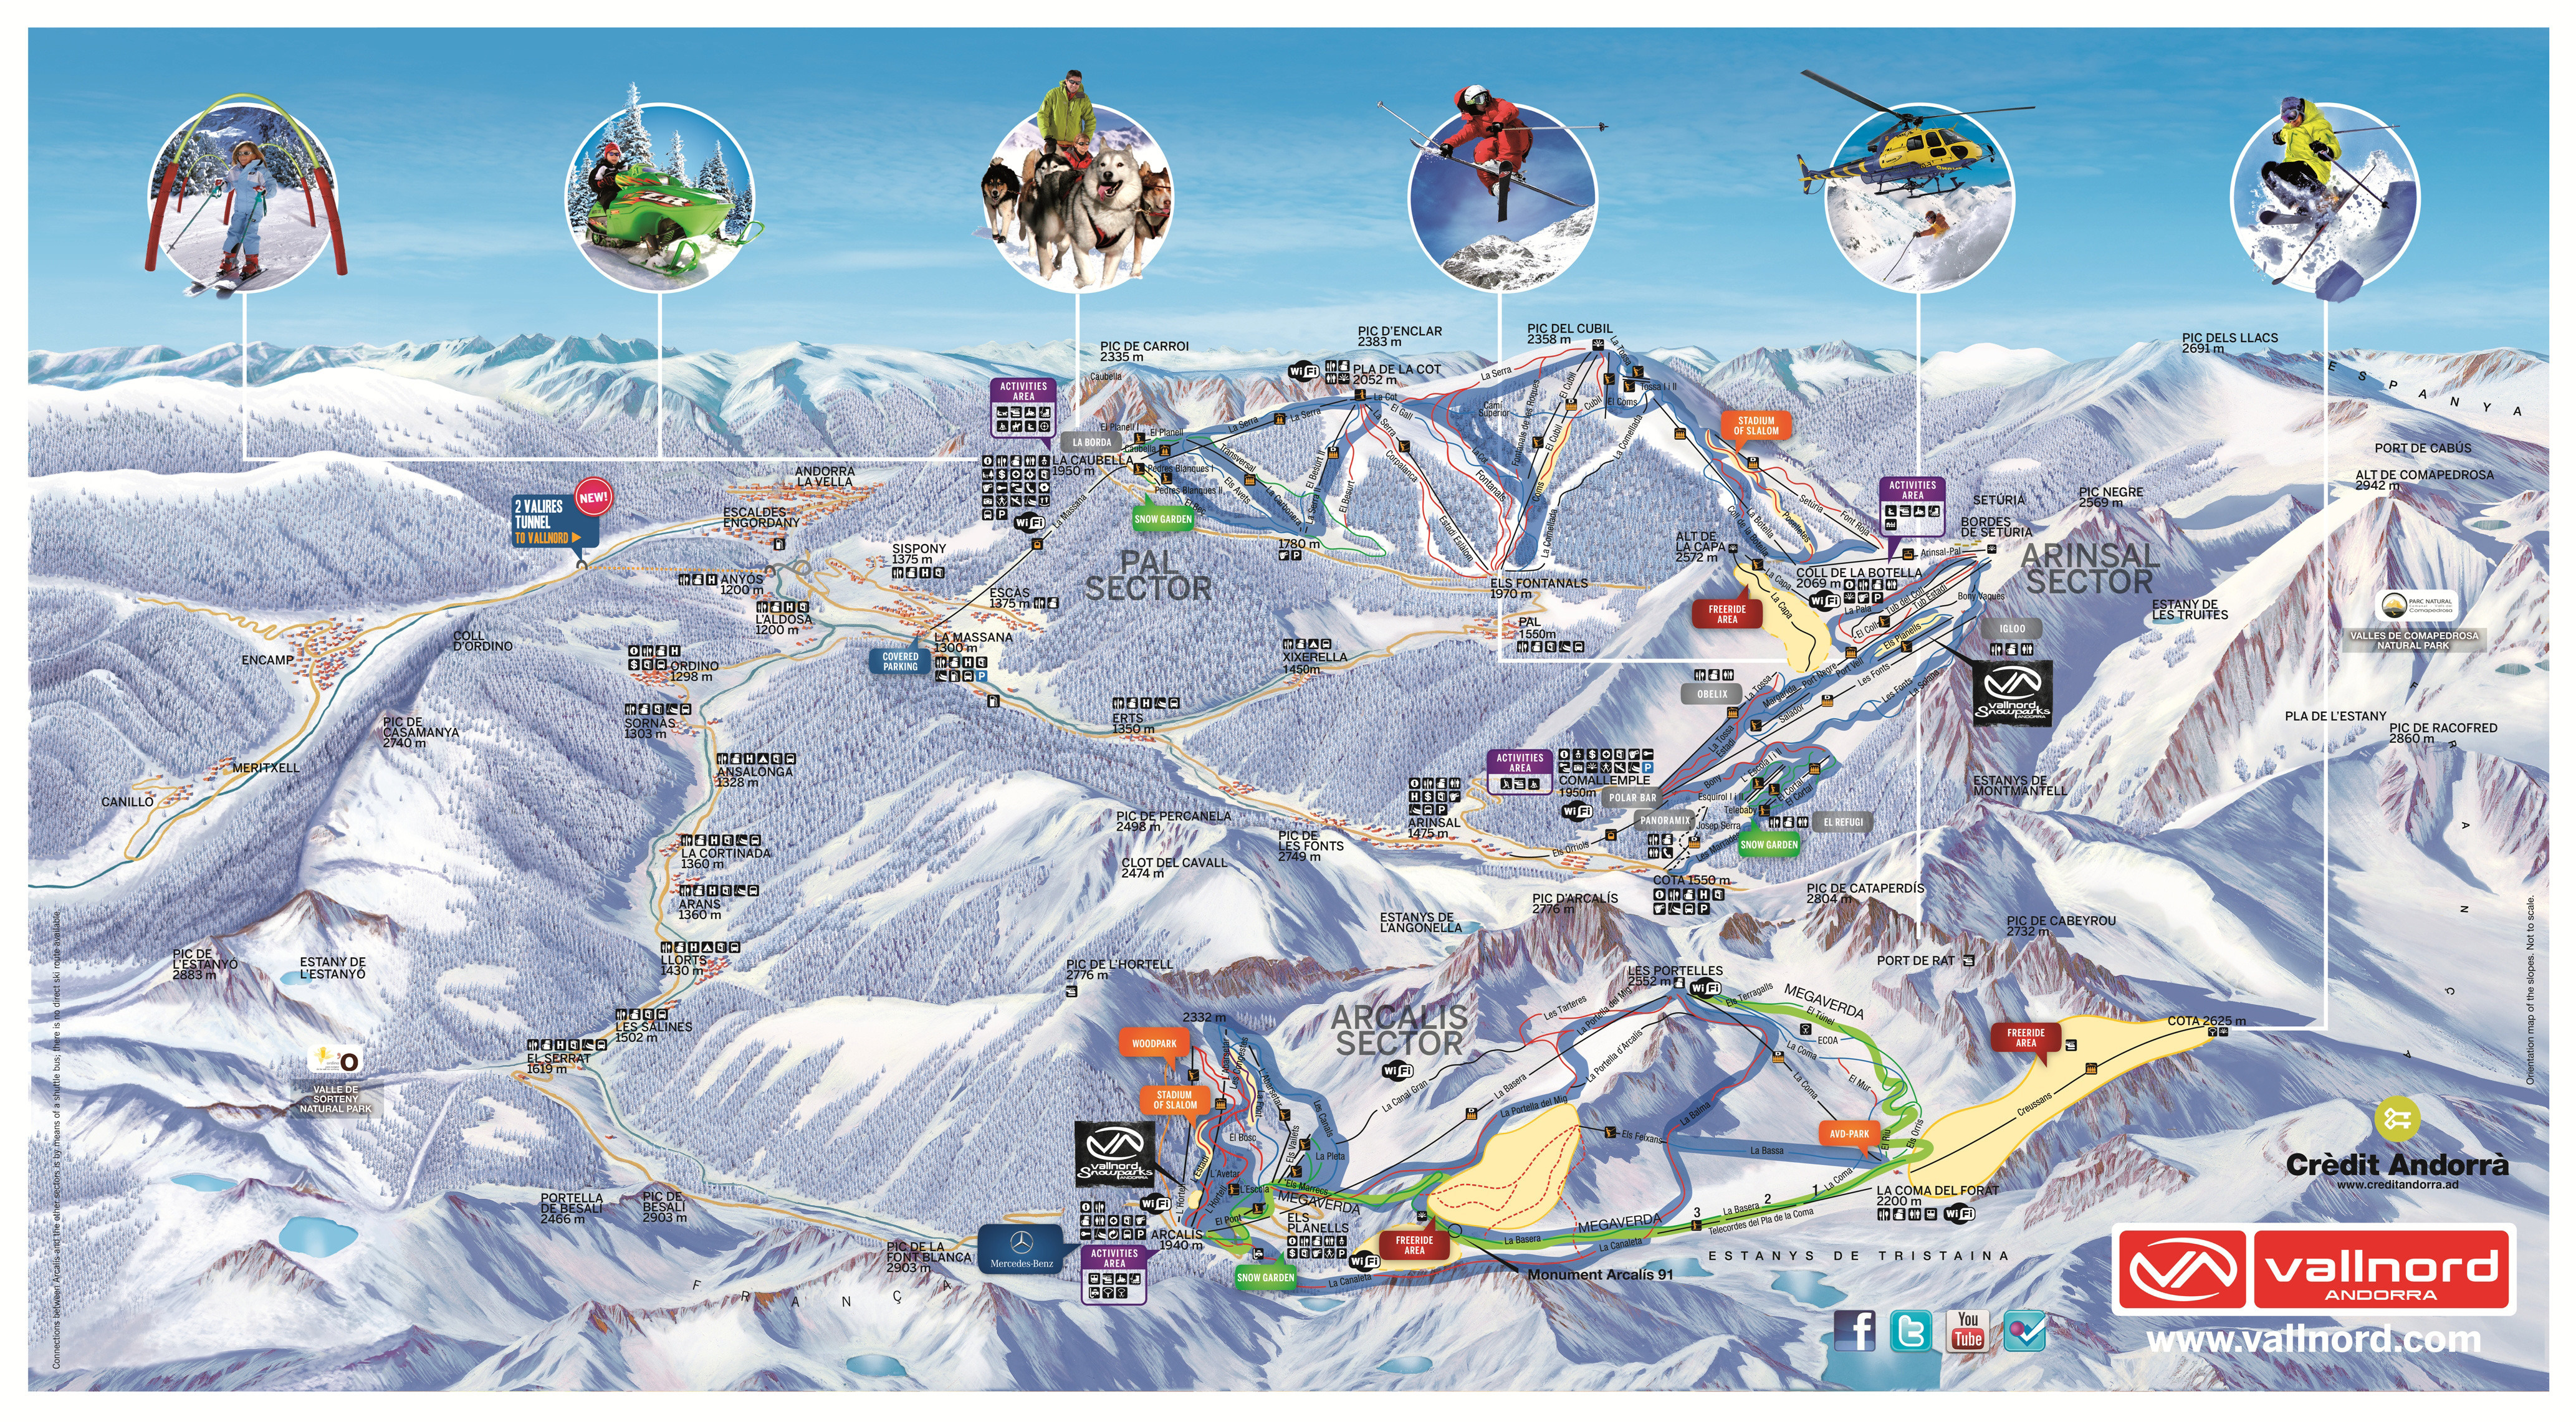 Vallnord - Arinsal and Pal sector